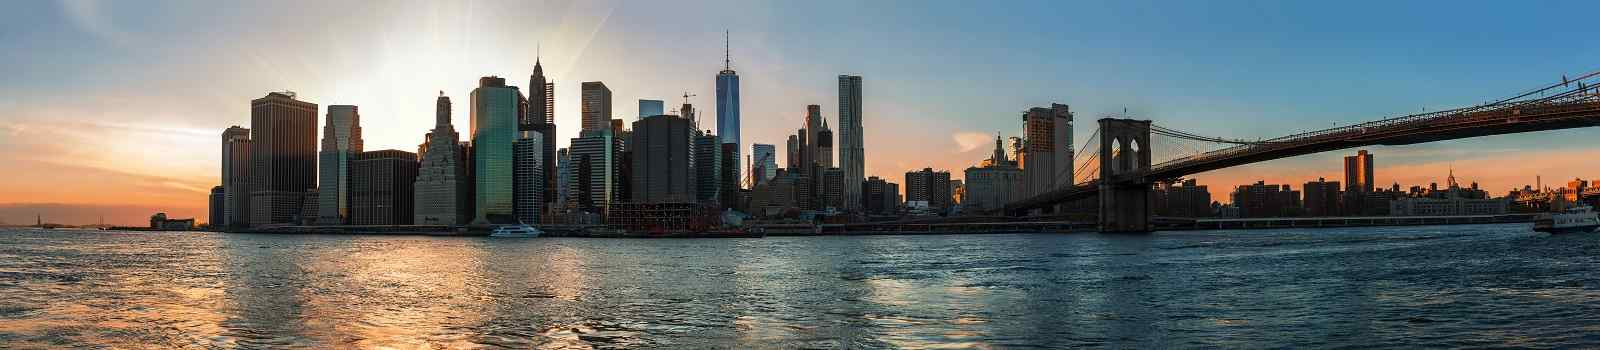 BUS-NY-FL Panorama of Manhattan Skyline and Brooklyn Bridge during sunset seen from Brooklyn Bridge Park shutterstock 536174290